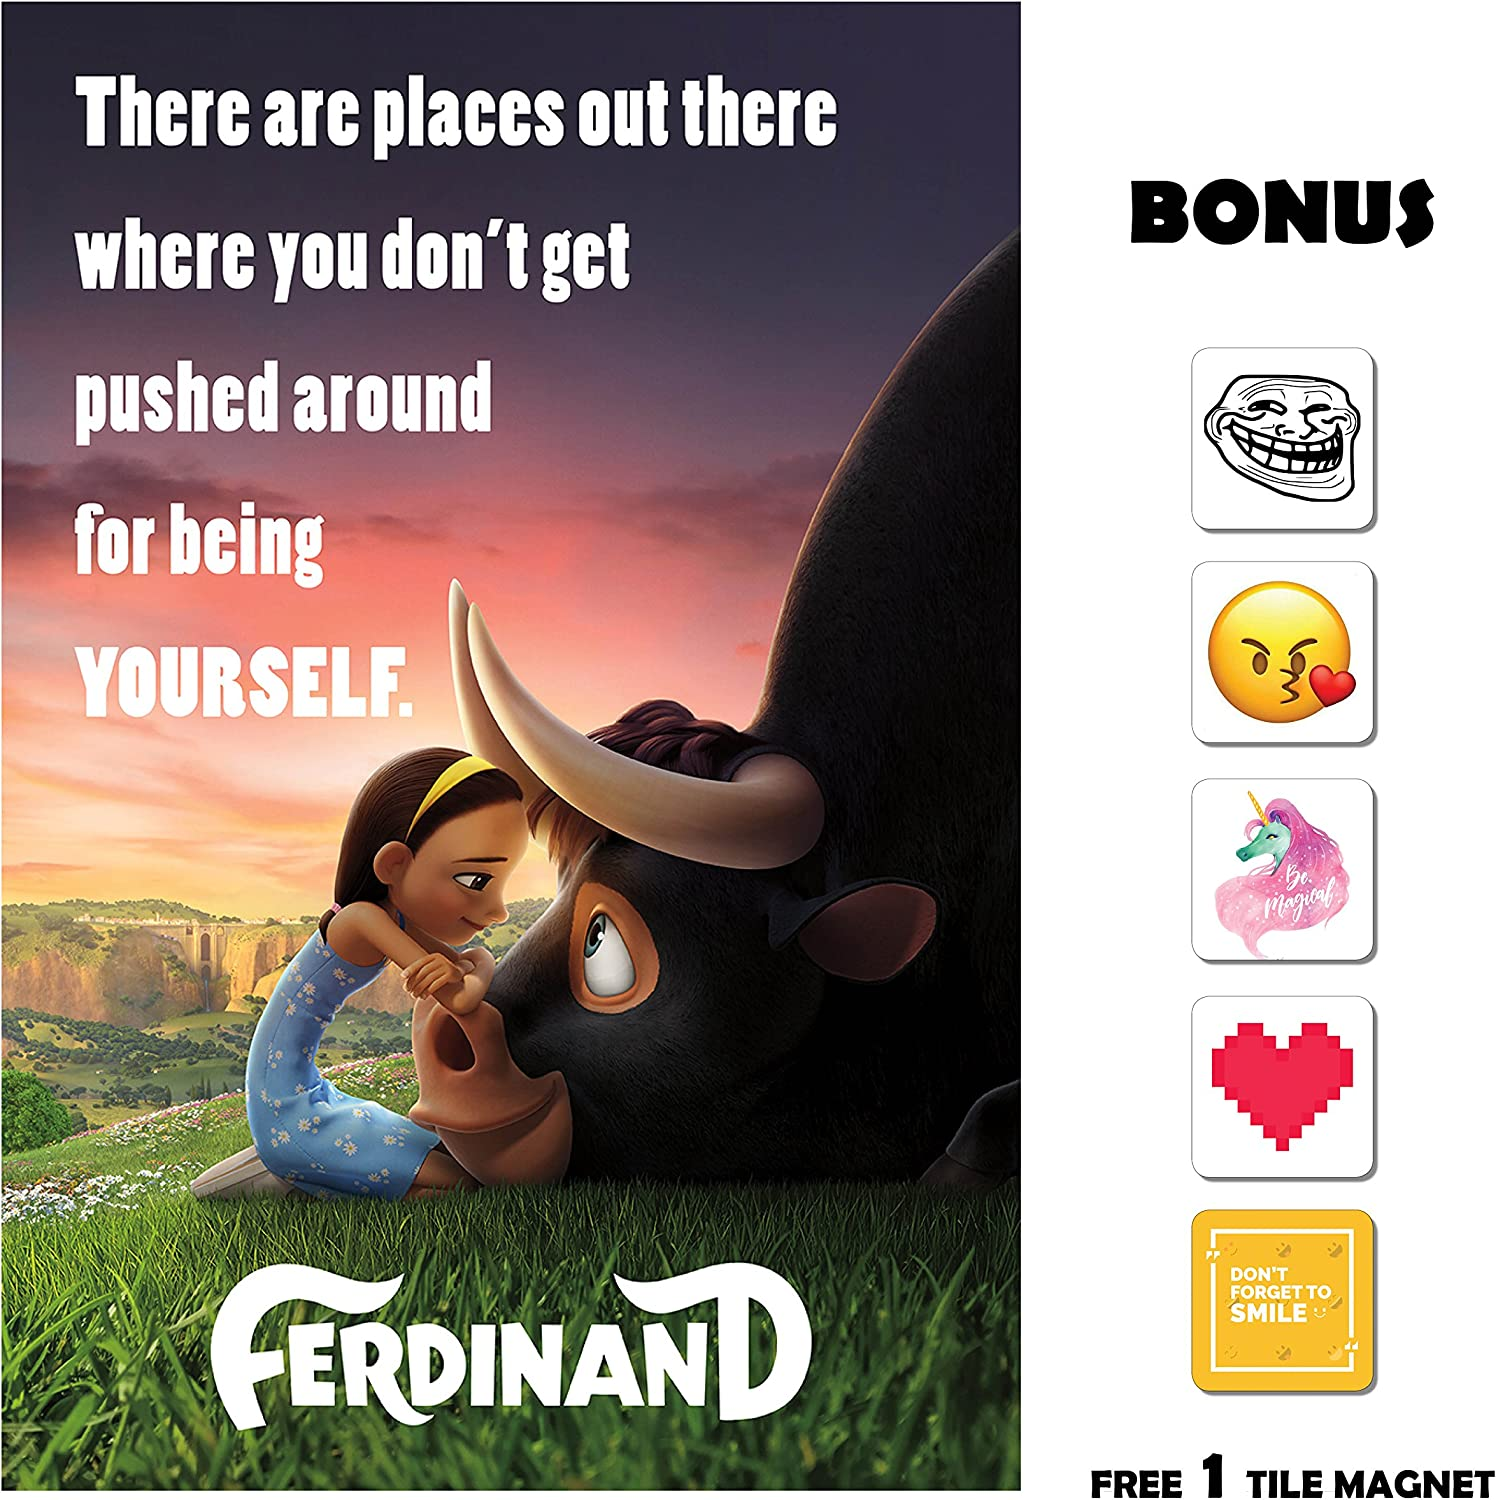 Amazon Com Movie Poster Ferdinand 2017 Quote Be Yourself 13 In X 19 In Flyer Borderless Free 1 Tile Magnet Posters Prints